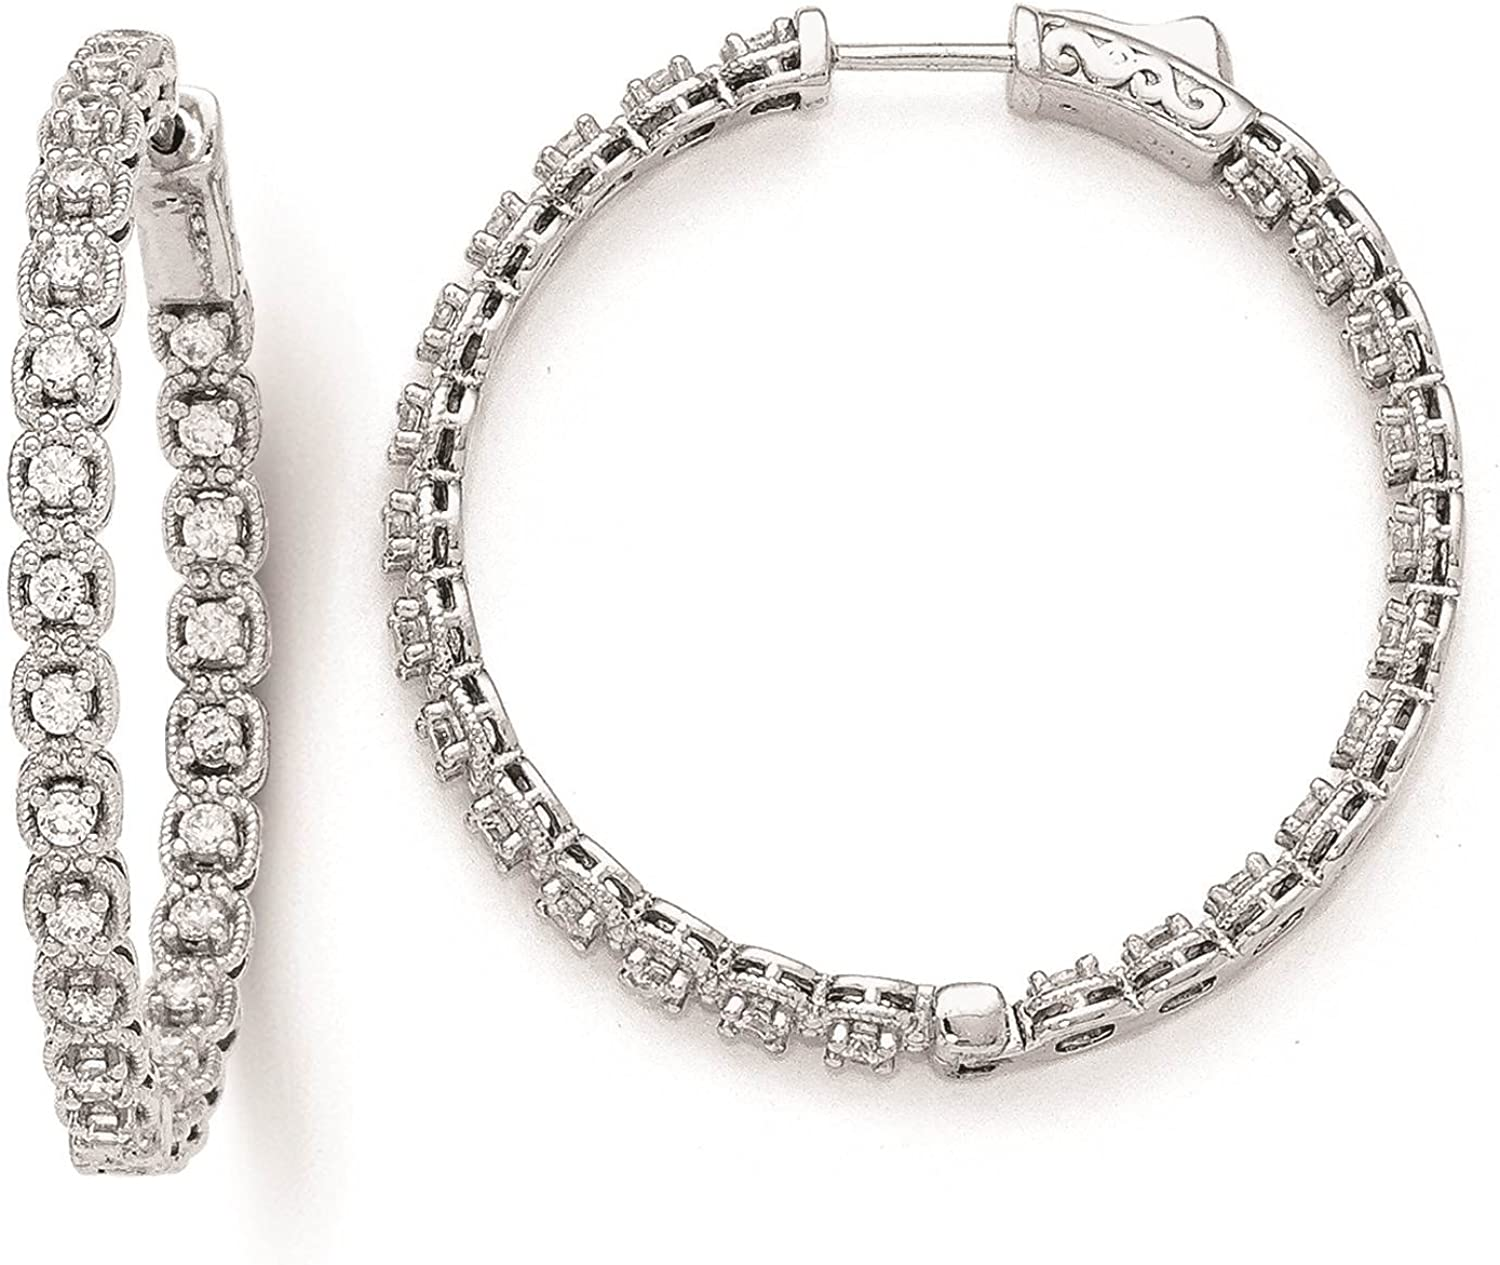 925 Sterling Silver Rhodium-plated CZ In /& Out Hoop Earrings 3mm x 37mm by 925 Sterling Shimmer